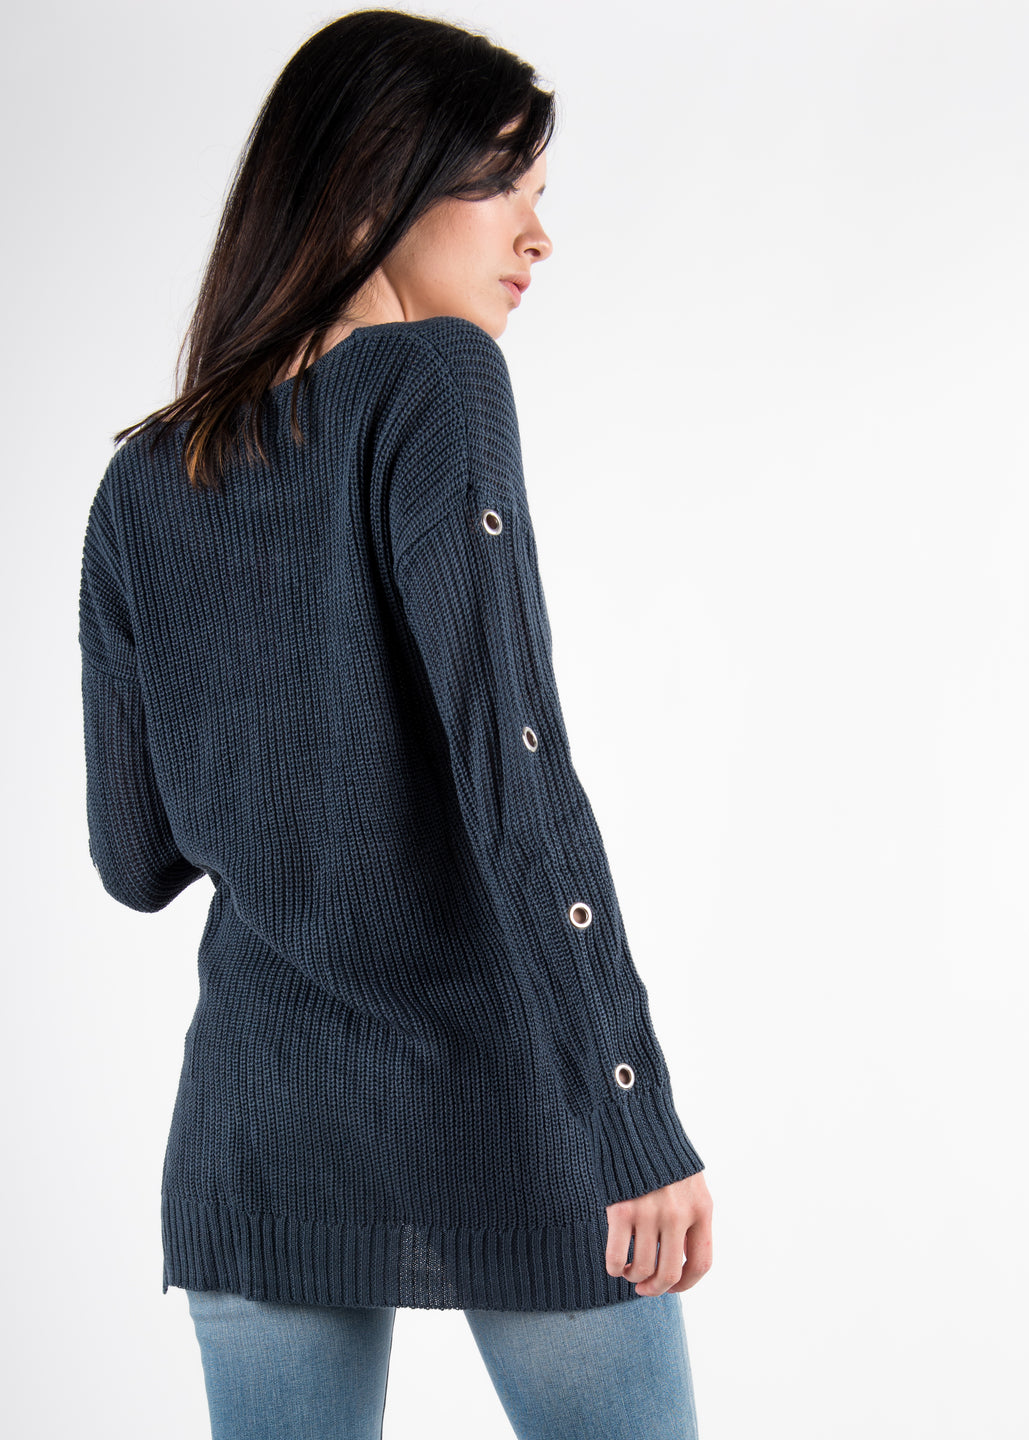 Grommet Sleeve Sweater